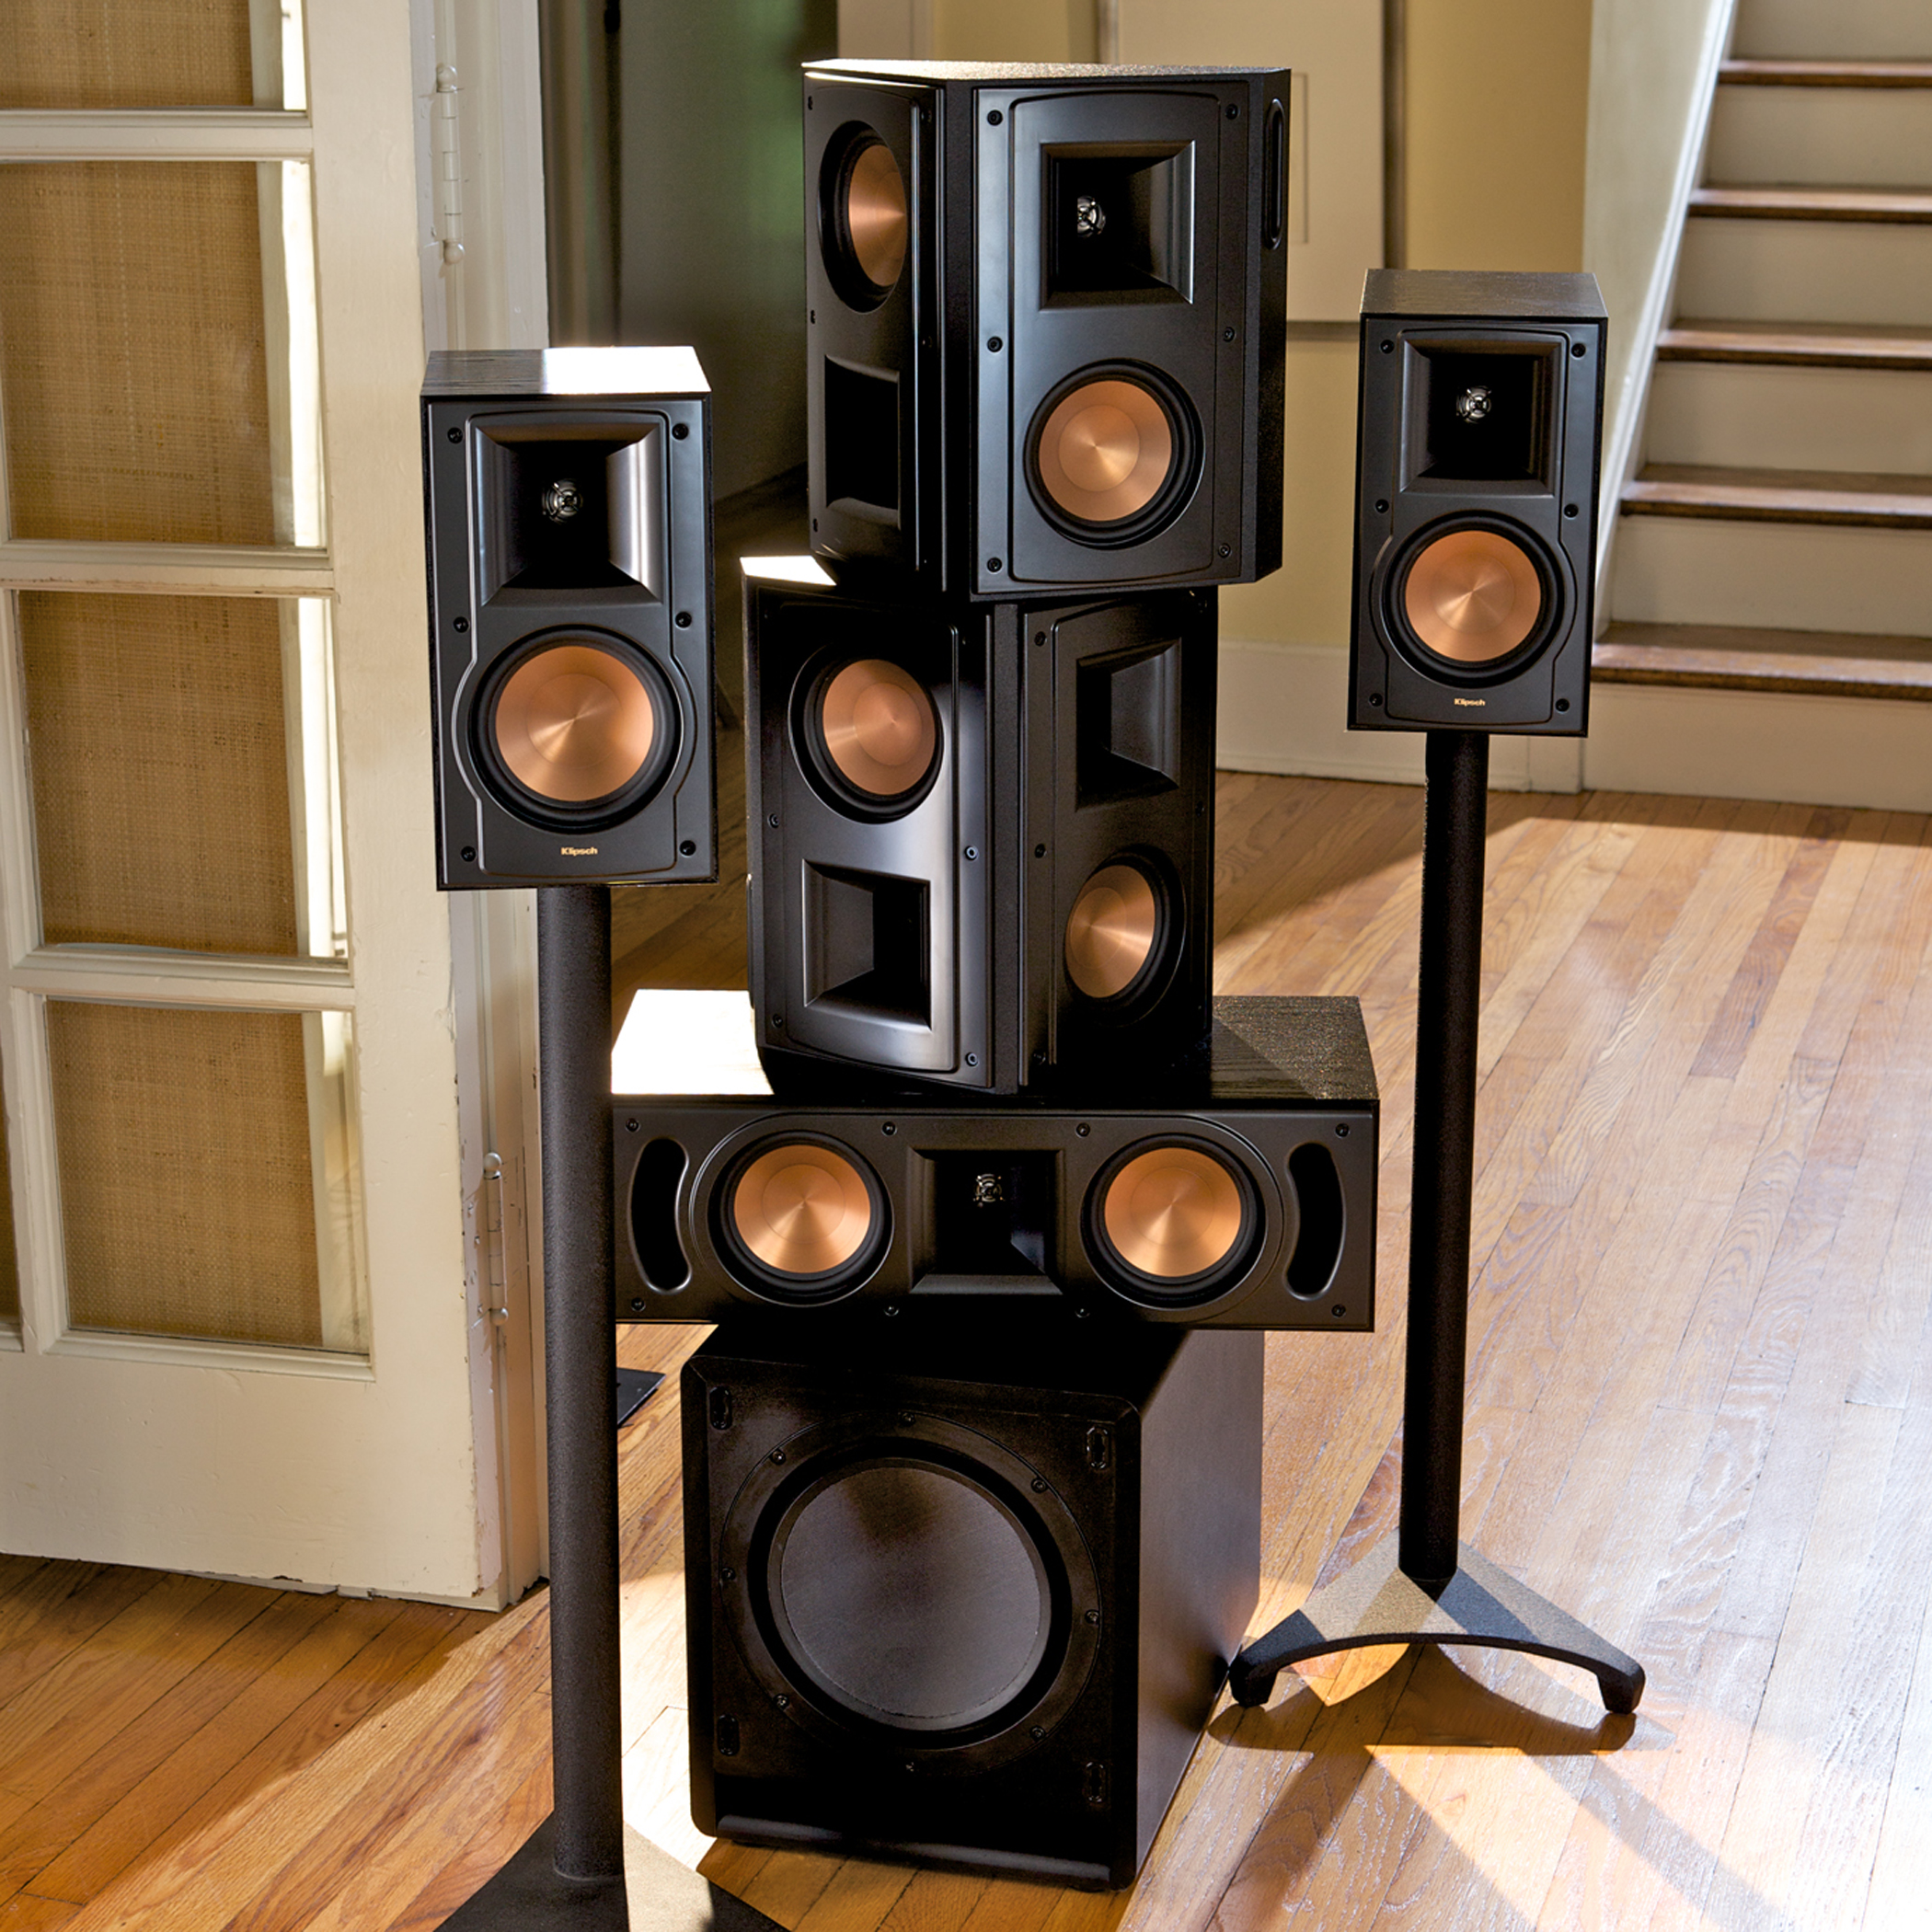 rb-51 ii bookshelf speakers (pair) | klipsch